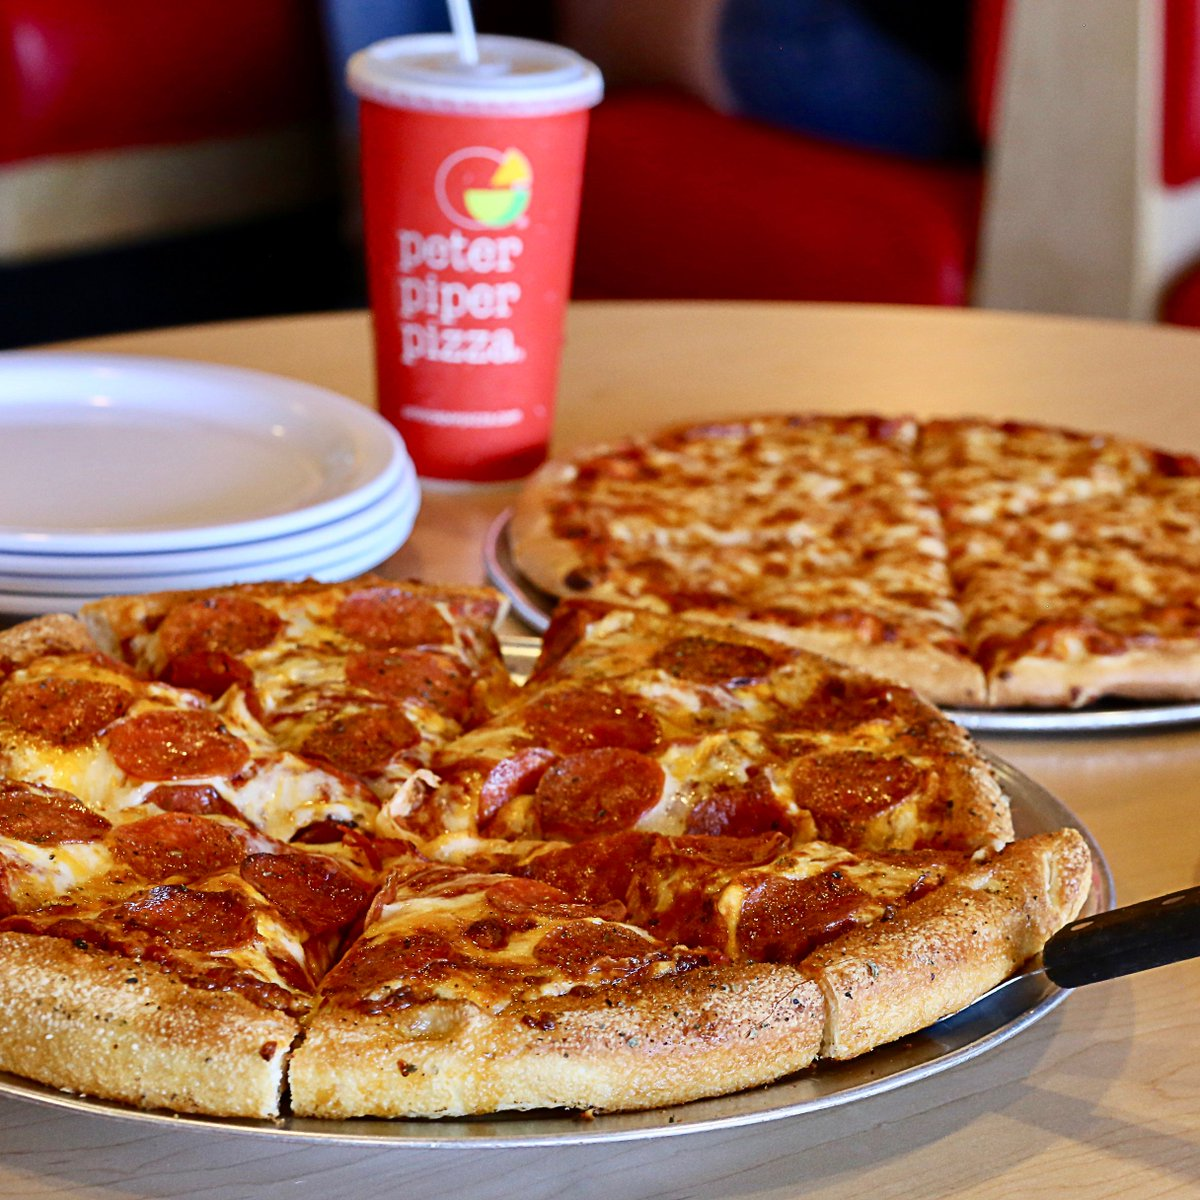 Dine-in at your nearest Peter Piper Pizza for a delicious and convenient family dinner before Thanksgiving. What's your favorite #PeterPiperPizza menu item? 🍕 🥤 https://t.co/YqaqxiTvWd